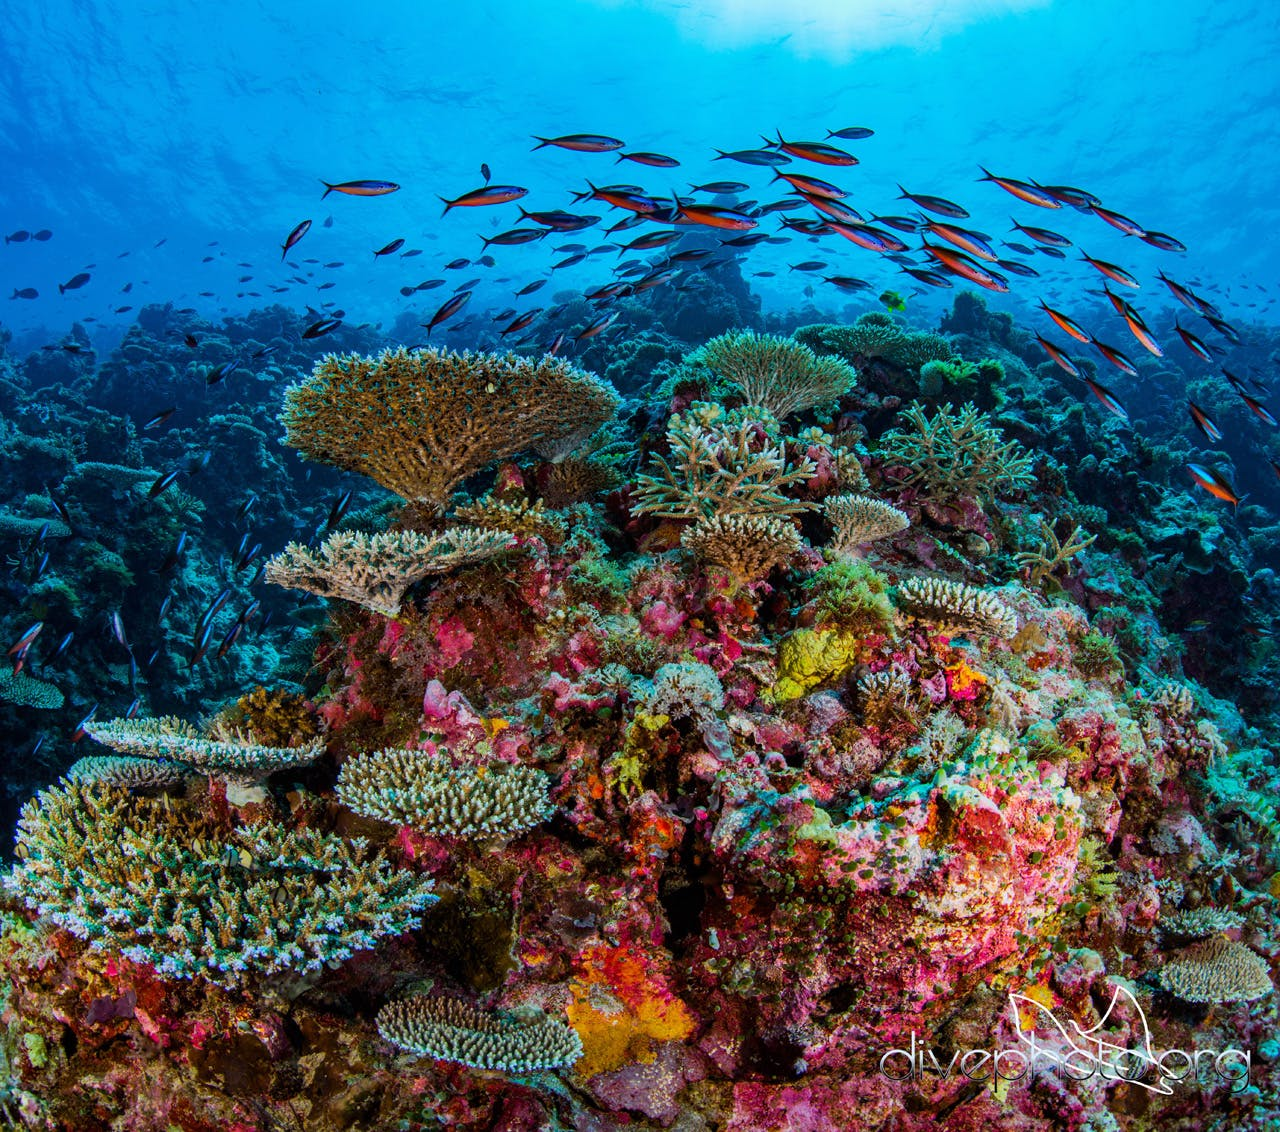 Reefscape: A Global Reef Survey To Build Better Satellites